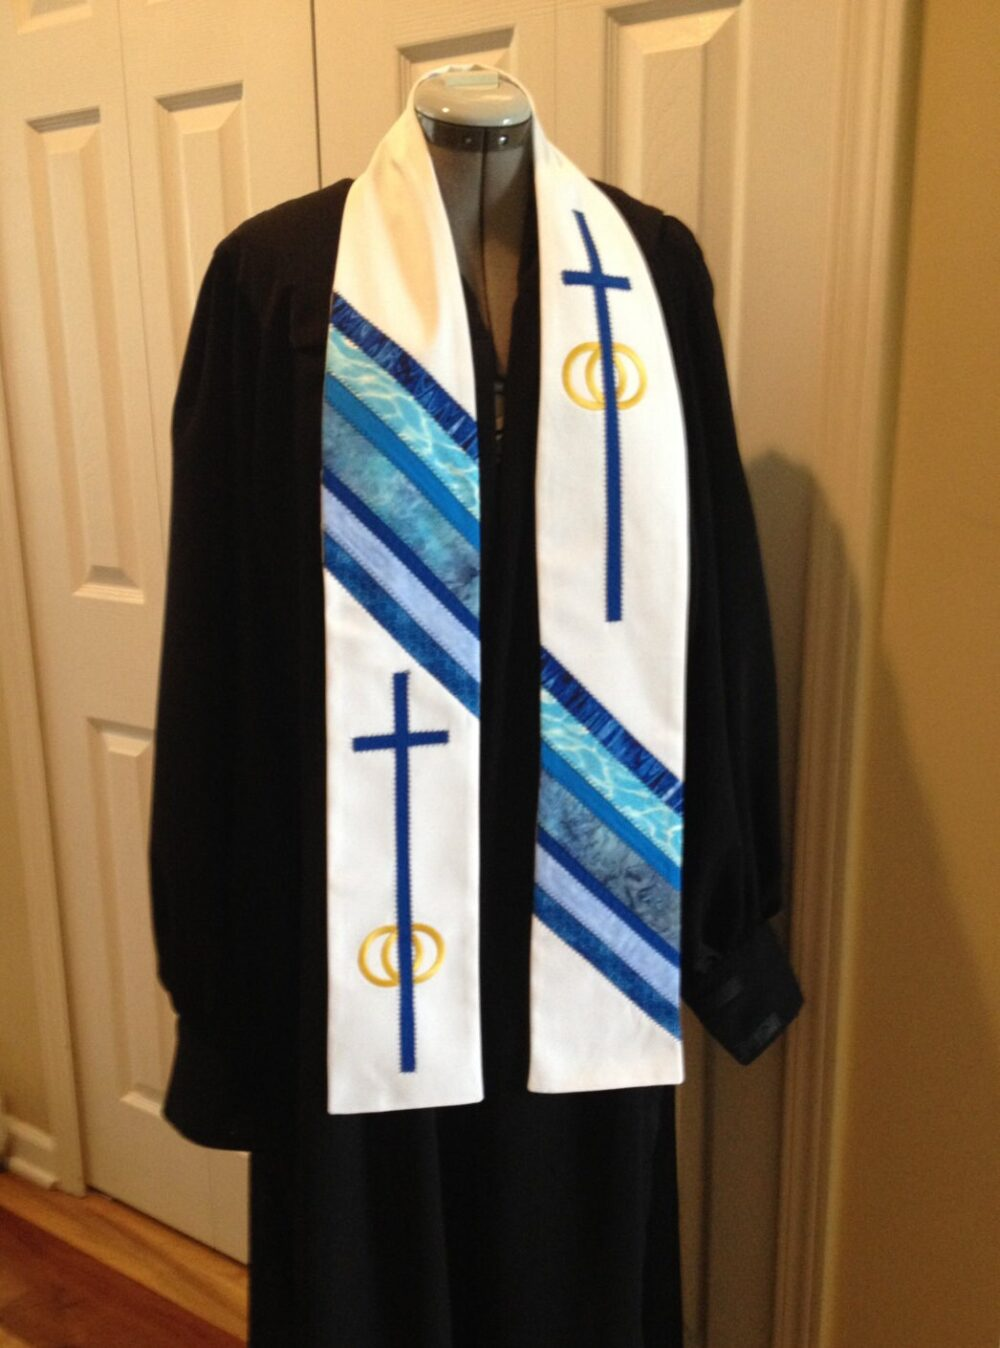 Wedding Officiant Clergy Stole With Blue Design, Cross & Rings